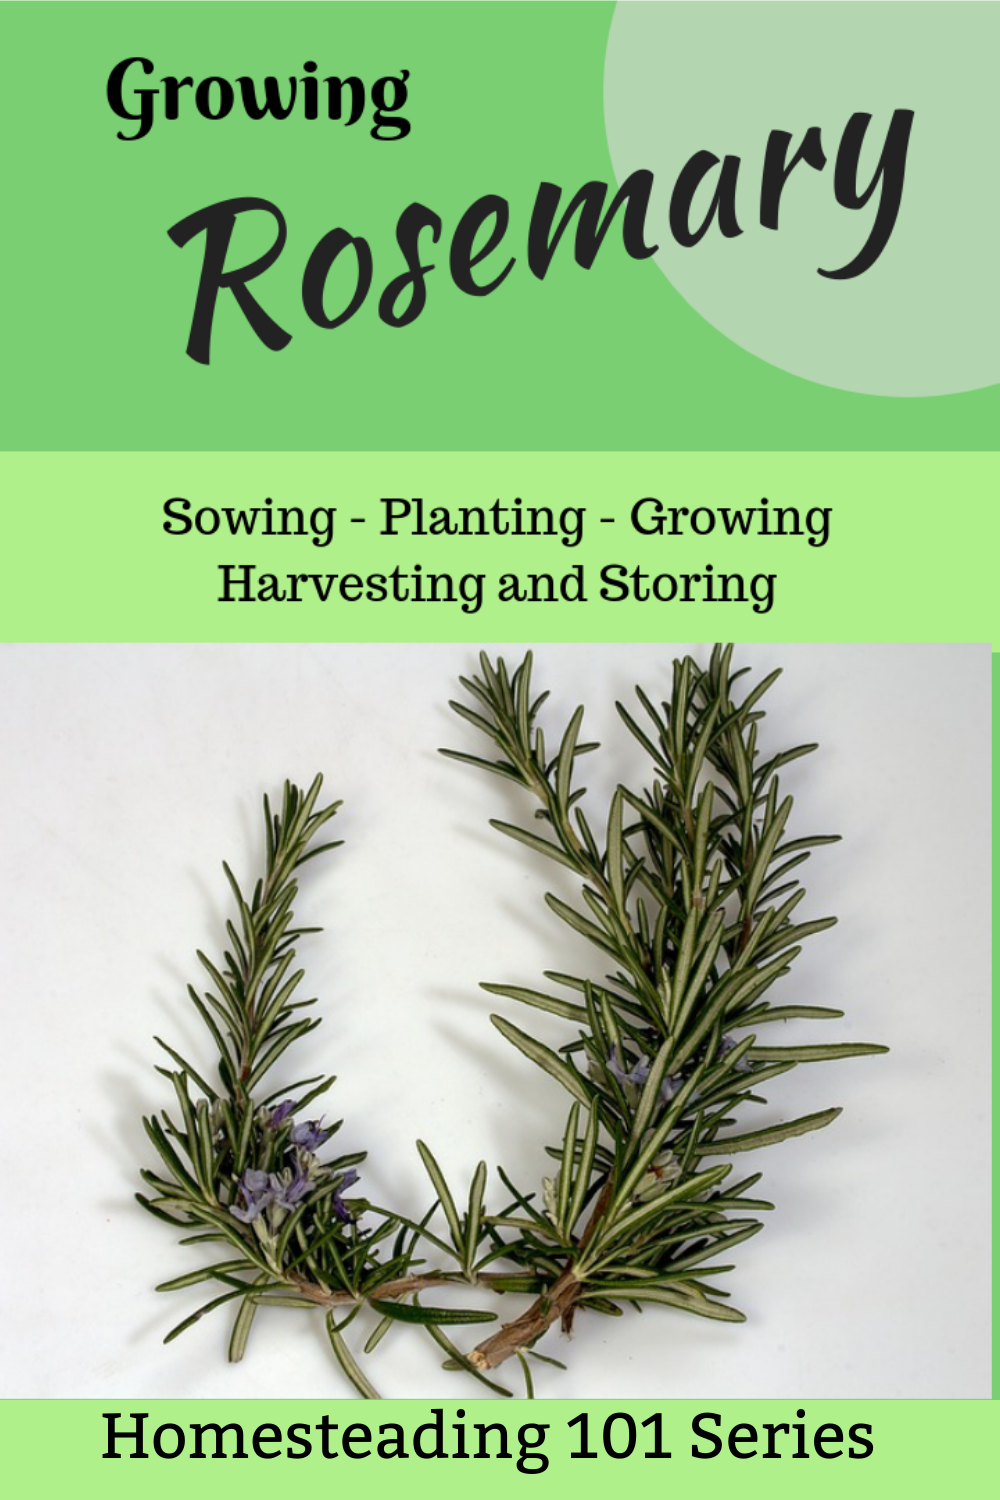 Growing Rosemary Homesteading 101 In 2020 Growing Rosemary Vegetable Garden For Beginners Organic Gardening Tips